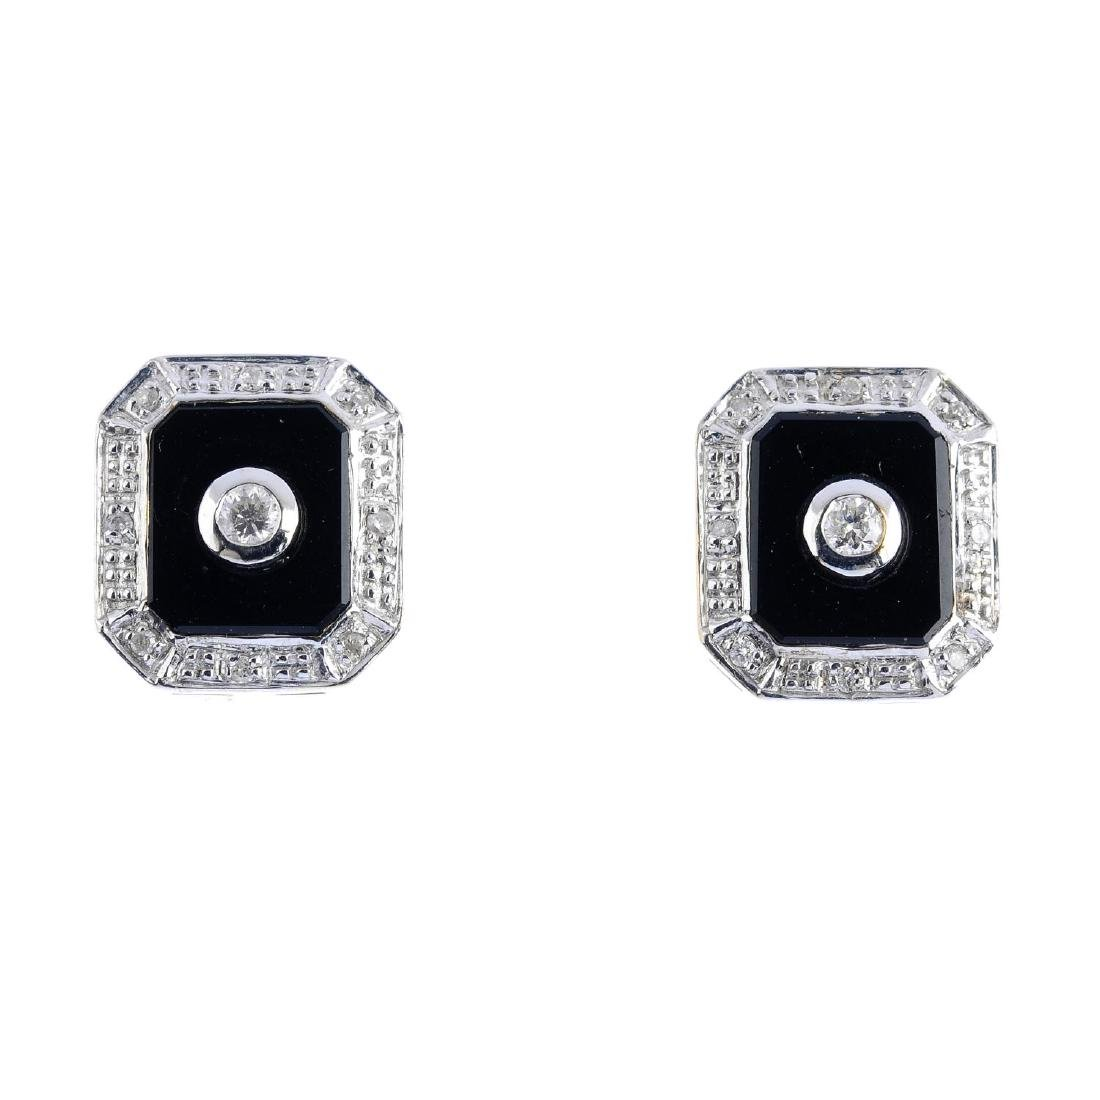 A pair of onyx and diamond stud earrings. Each designed